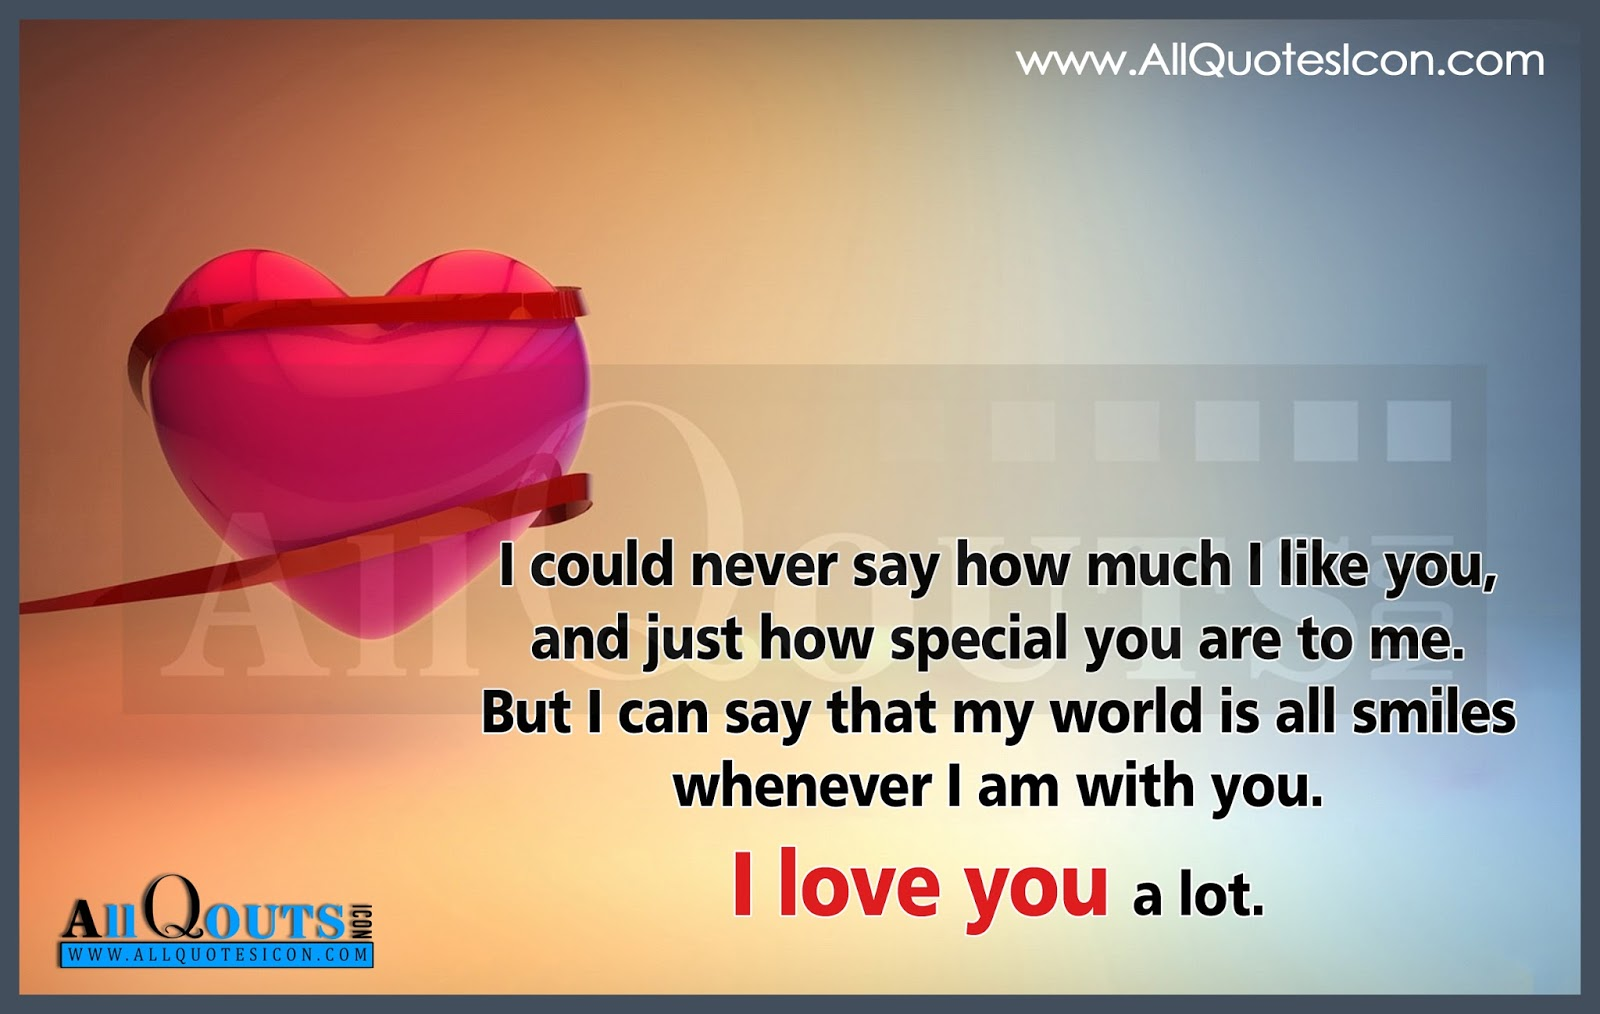 Love Message Wallpaper In English : Best Love Quotes With Images In English Wallpaper Images